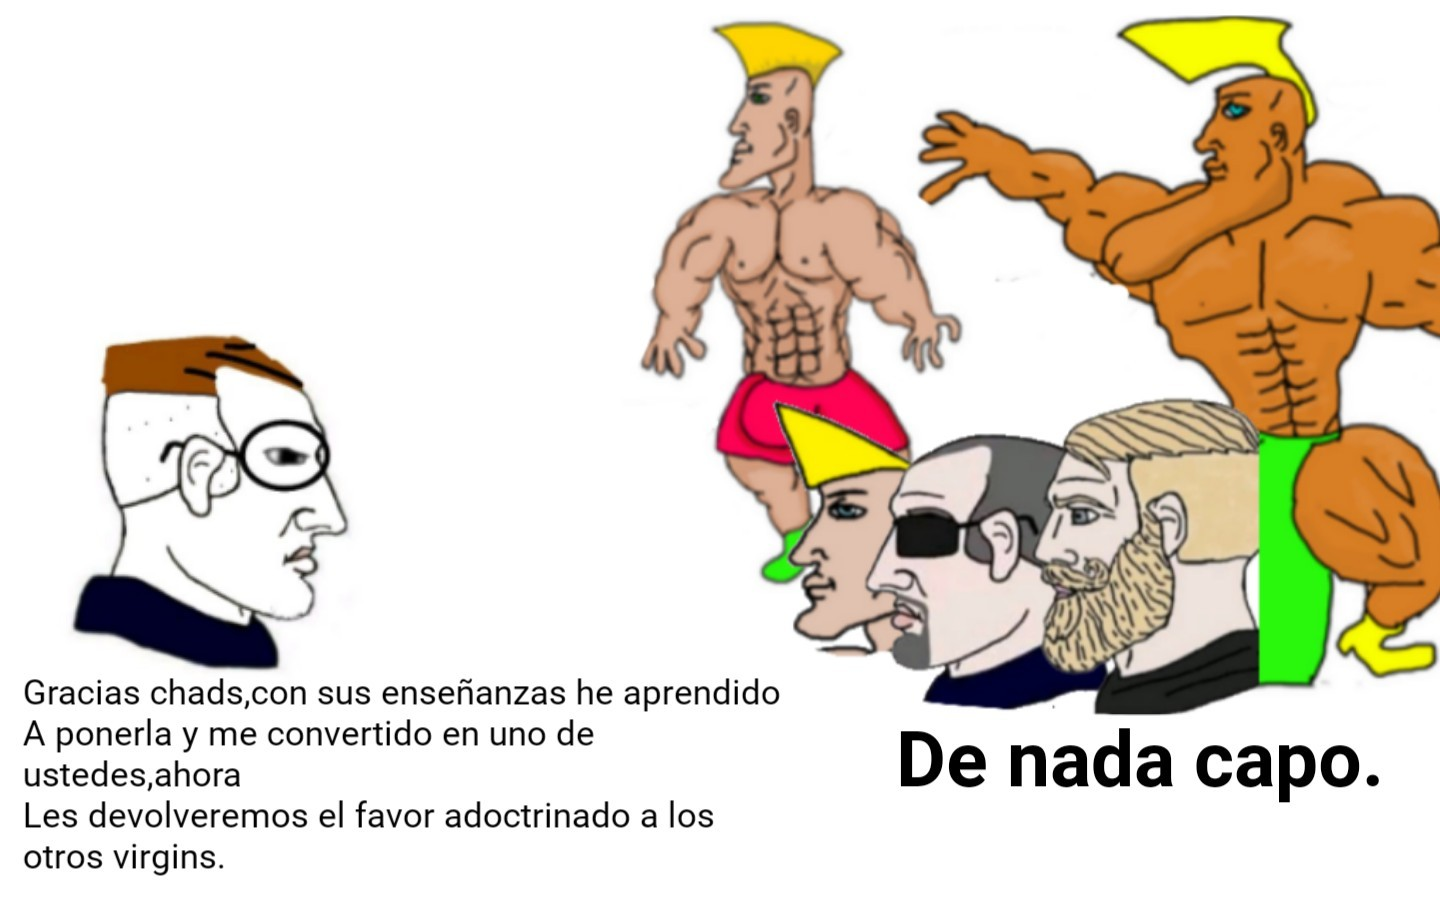 El virgin se ha vuelto chad. - meme